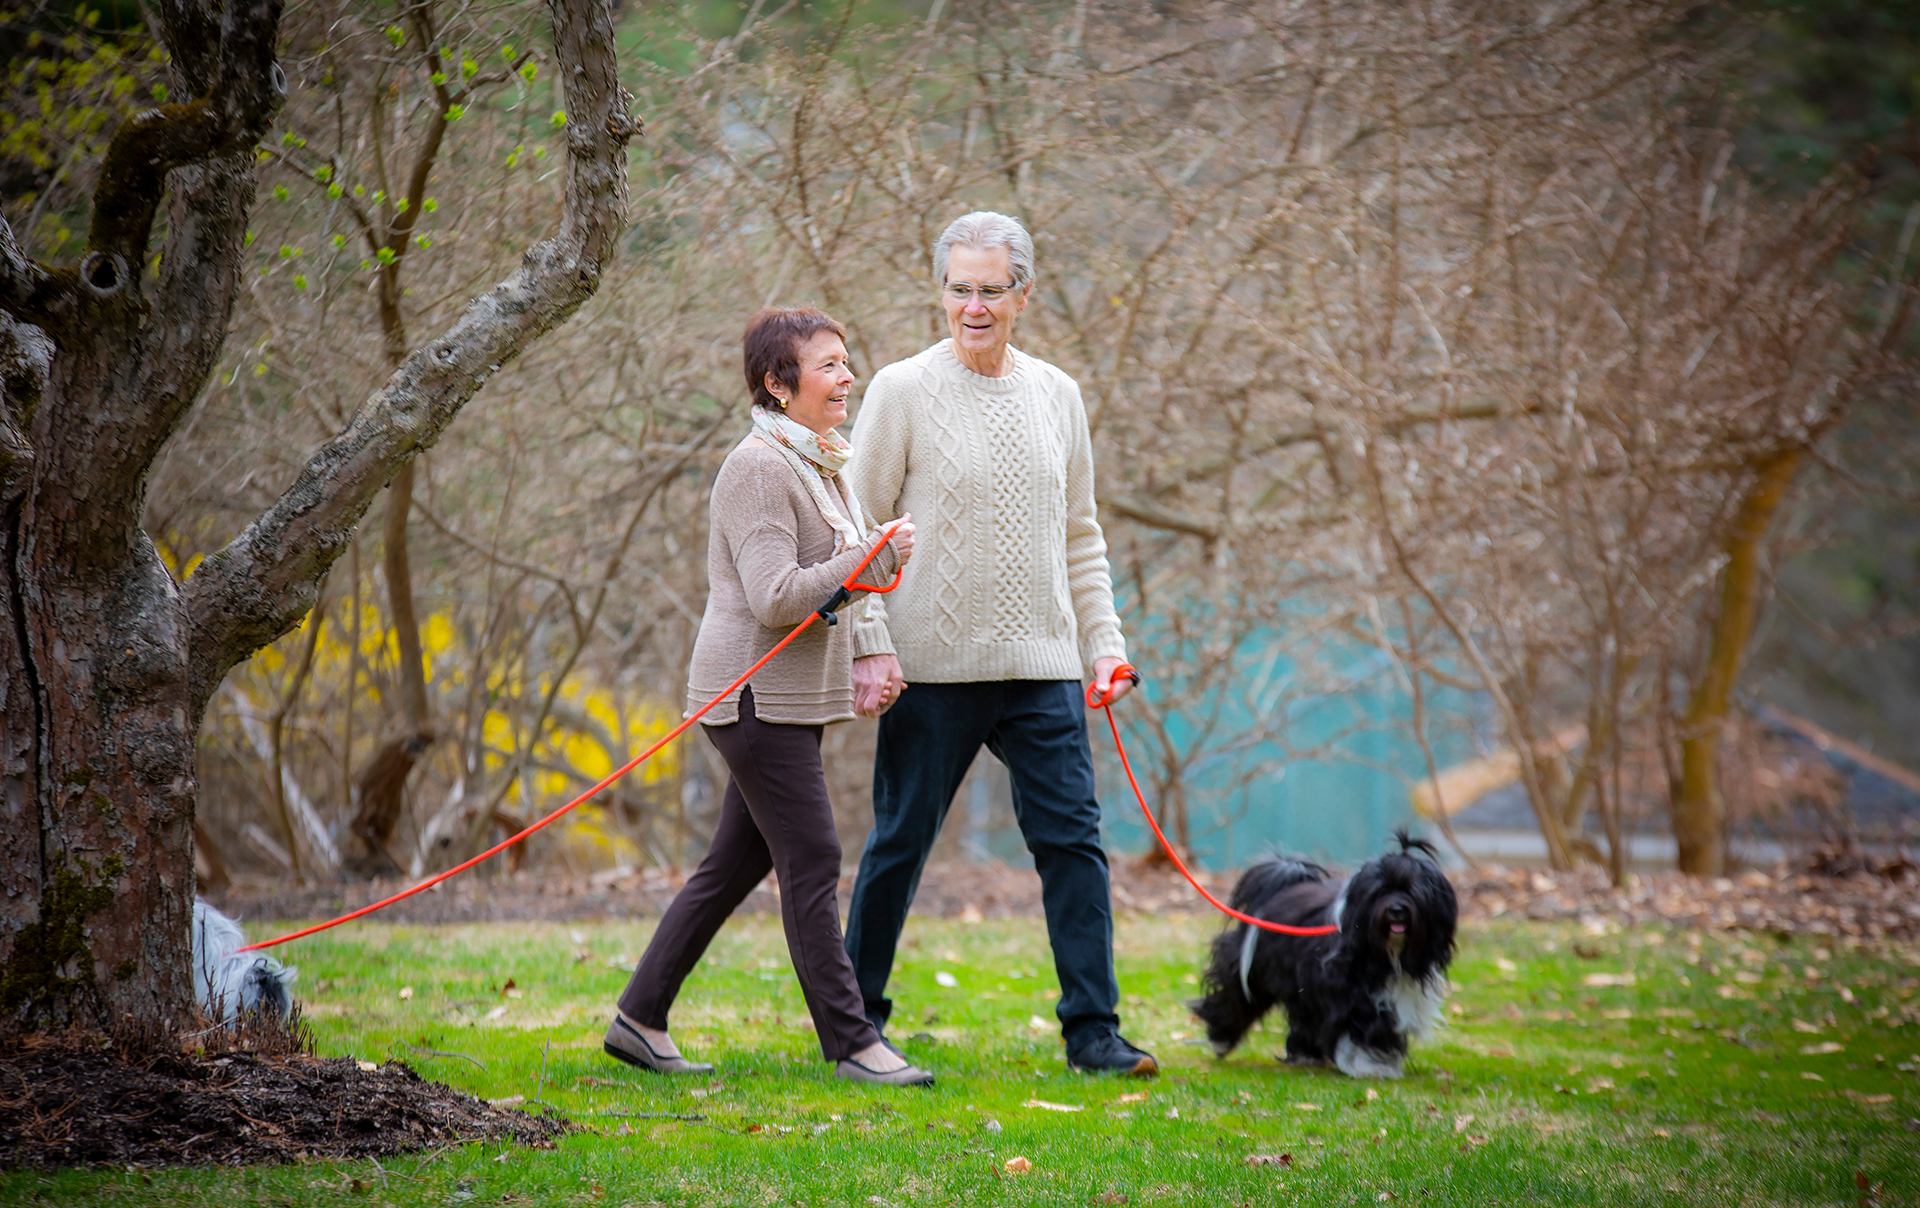 A candid shot of Dr. Irwin and her husband smiling as they take a leisurely stroll through a park with their two dogs. She is wearing a beige sweater and patterned scarf, he is an older white man wearing glasses and a cream-colored knit sweater and blue slacks. Their fluffy black dog stands next to him as their white and black dog sniffs behind a tree.